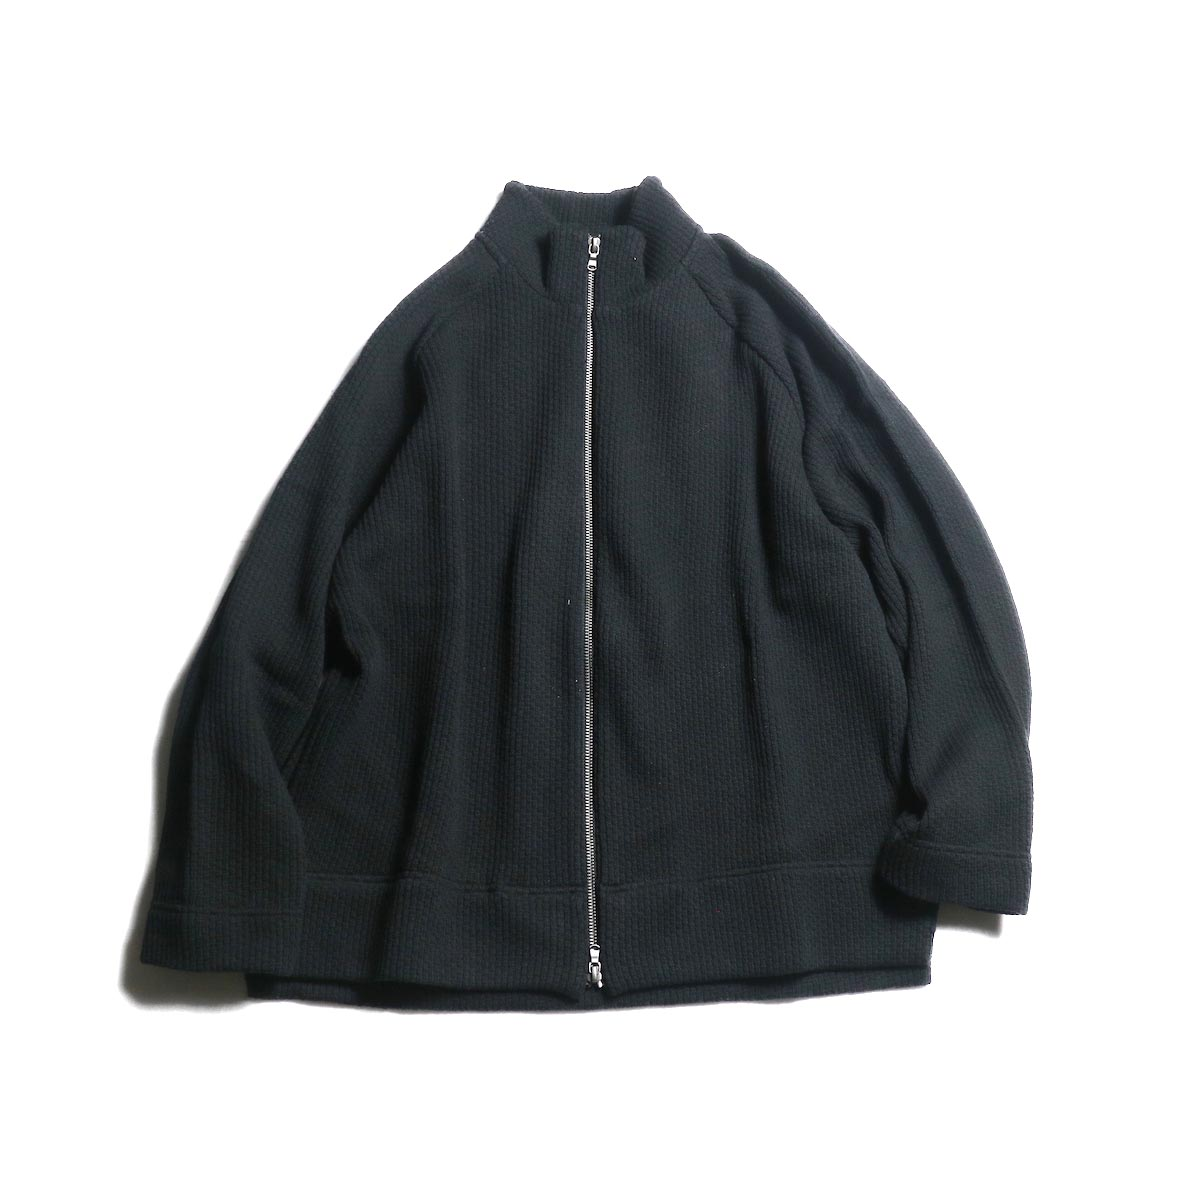 CURLY / CLOUDY FZ SWEATER (Black)